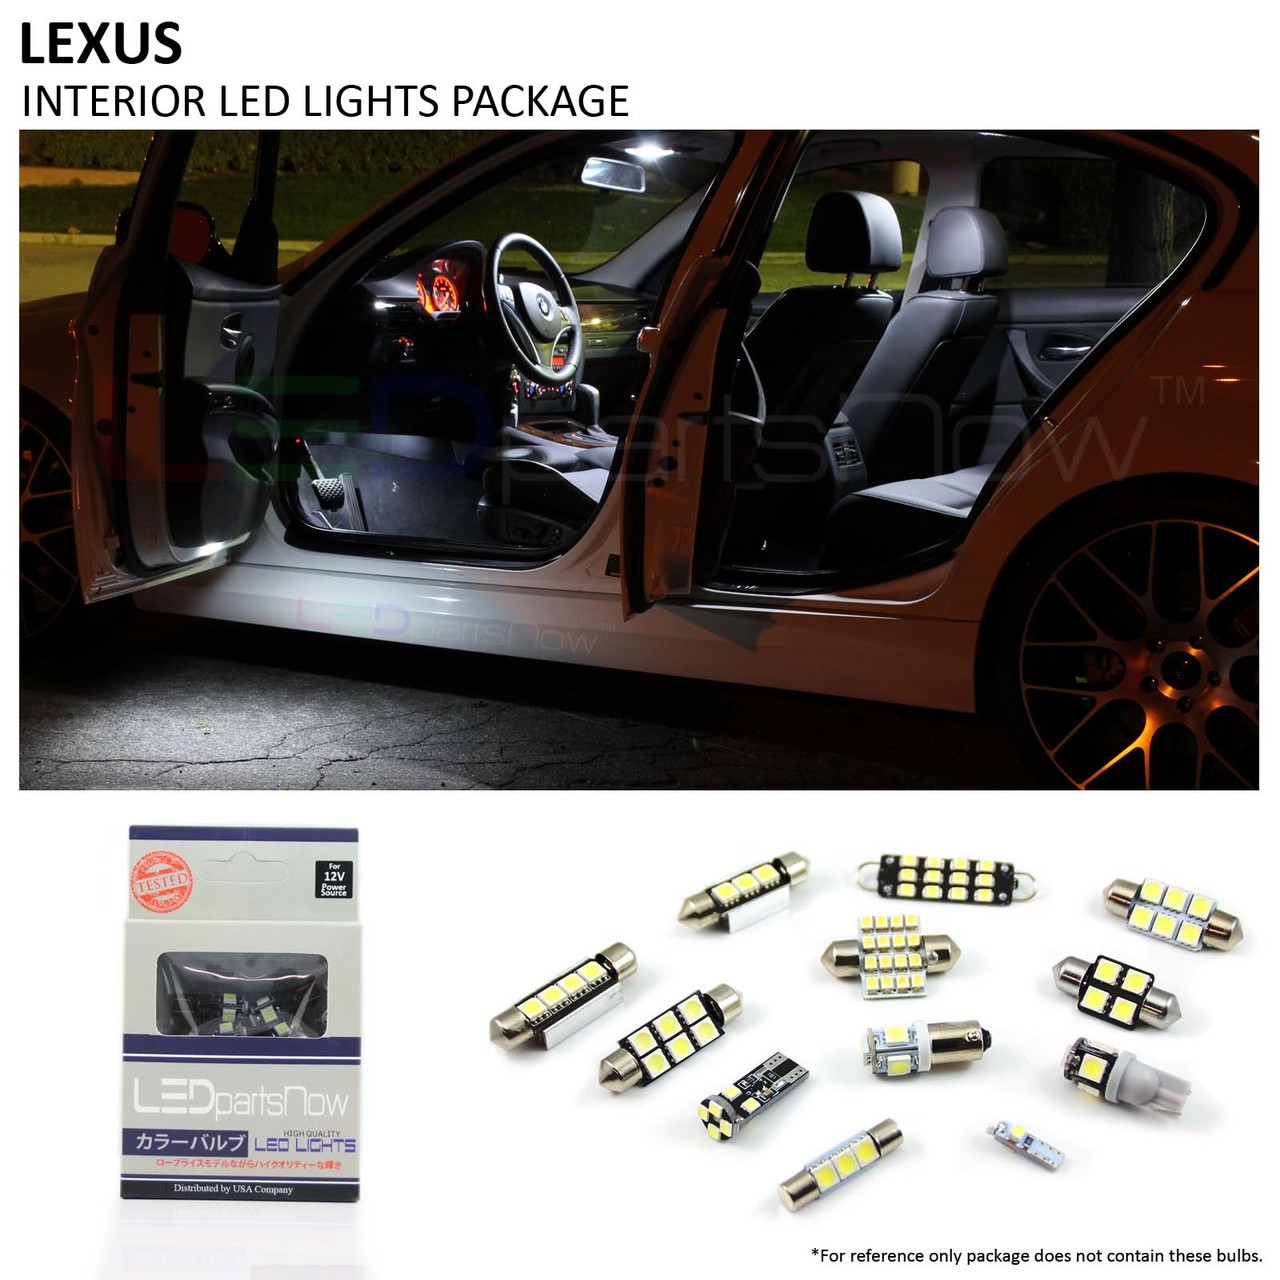 2004 2009 Lexus Rx Interior Led Lights Package 2005 Rx330 Image 1